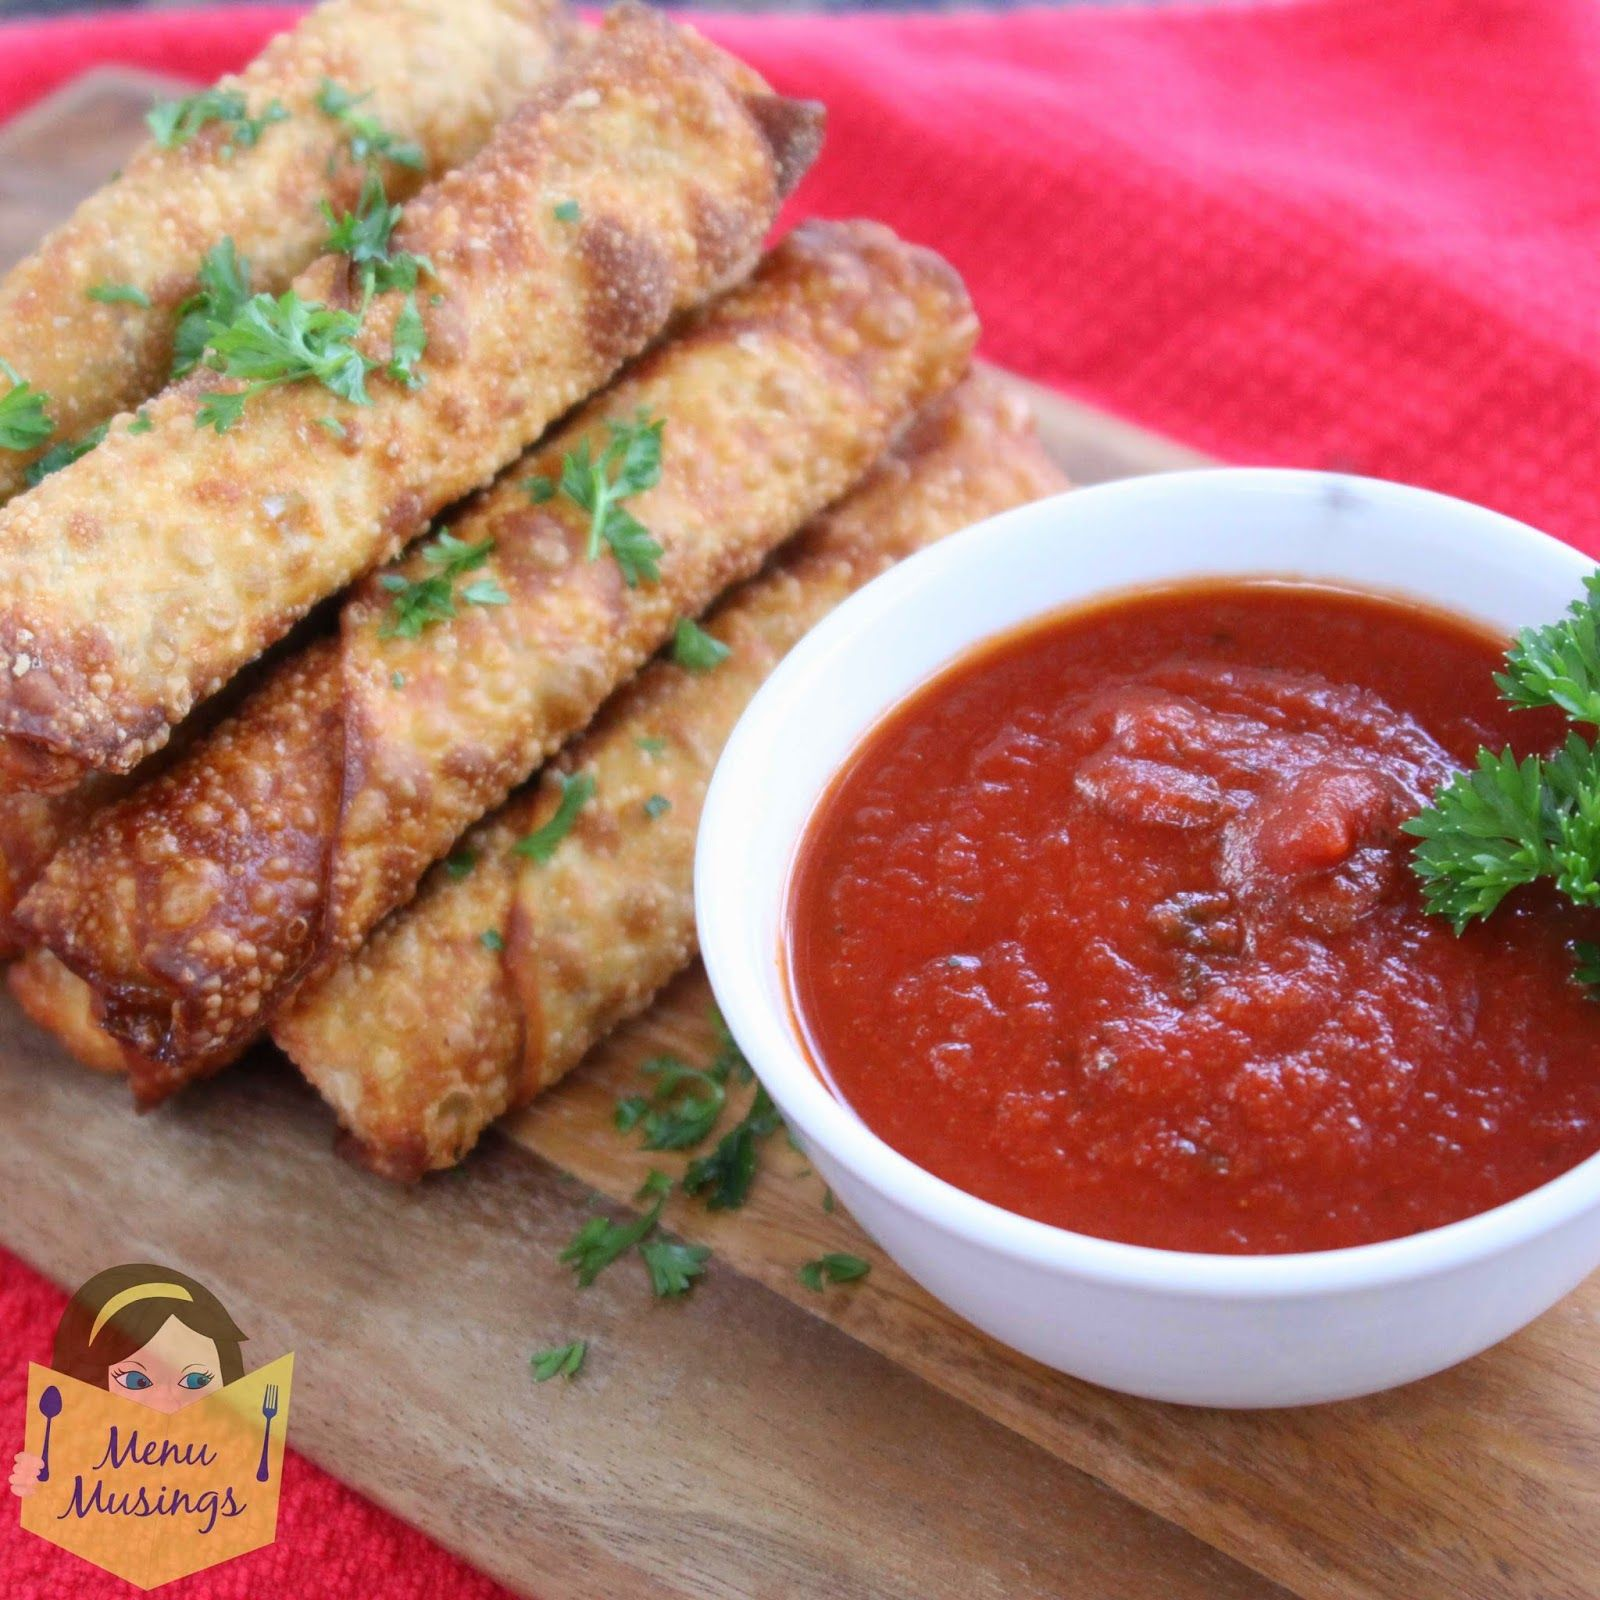 Step-by-step photo recipe tutorial to making easy happy hour pizza rolls from egg roll wrappers, kid friendly food, easy appetizers, party food, tailgating food